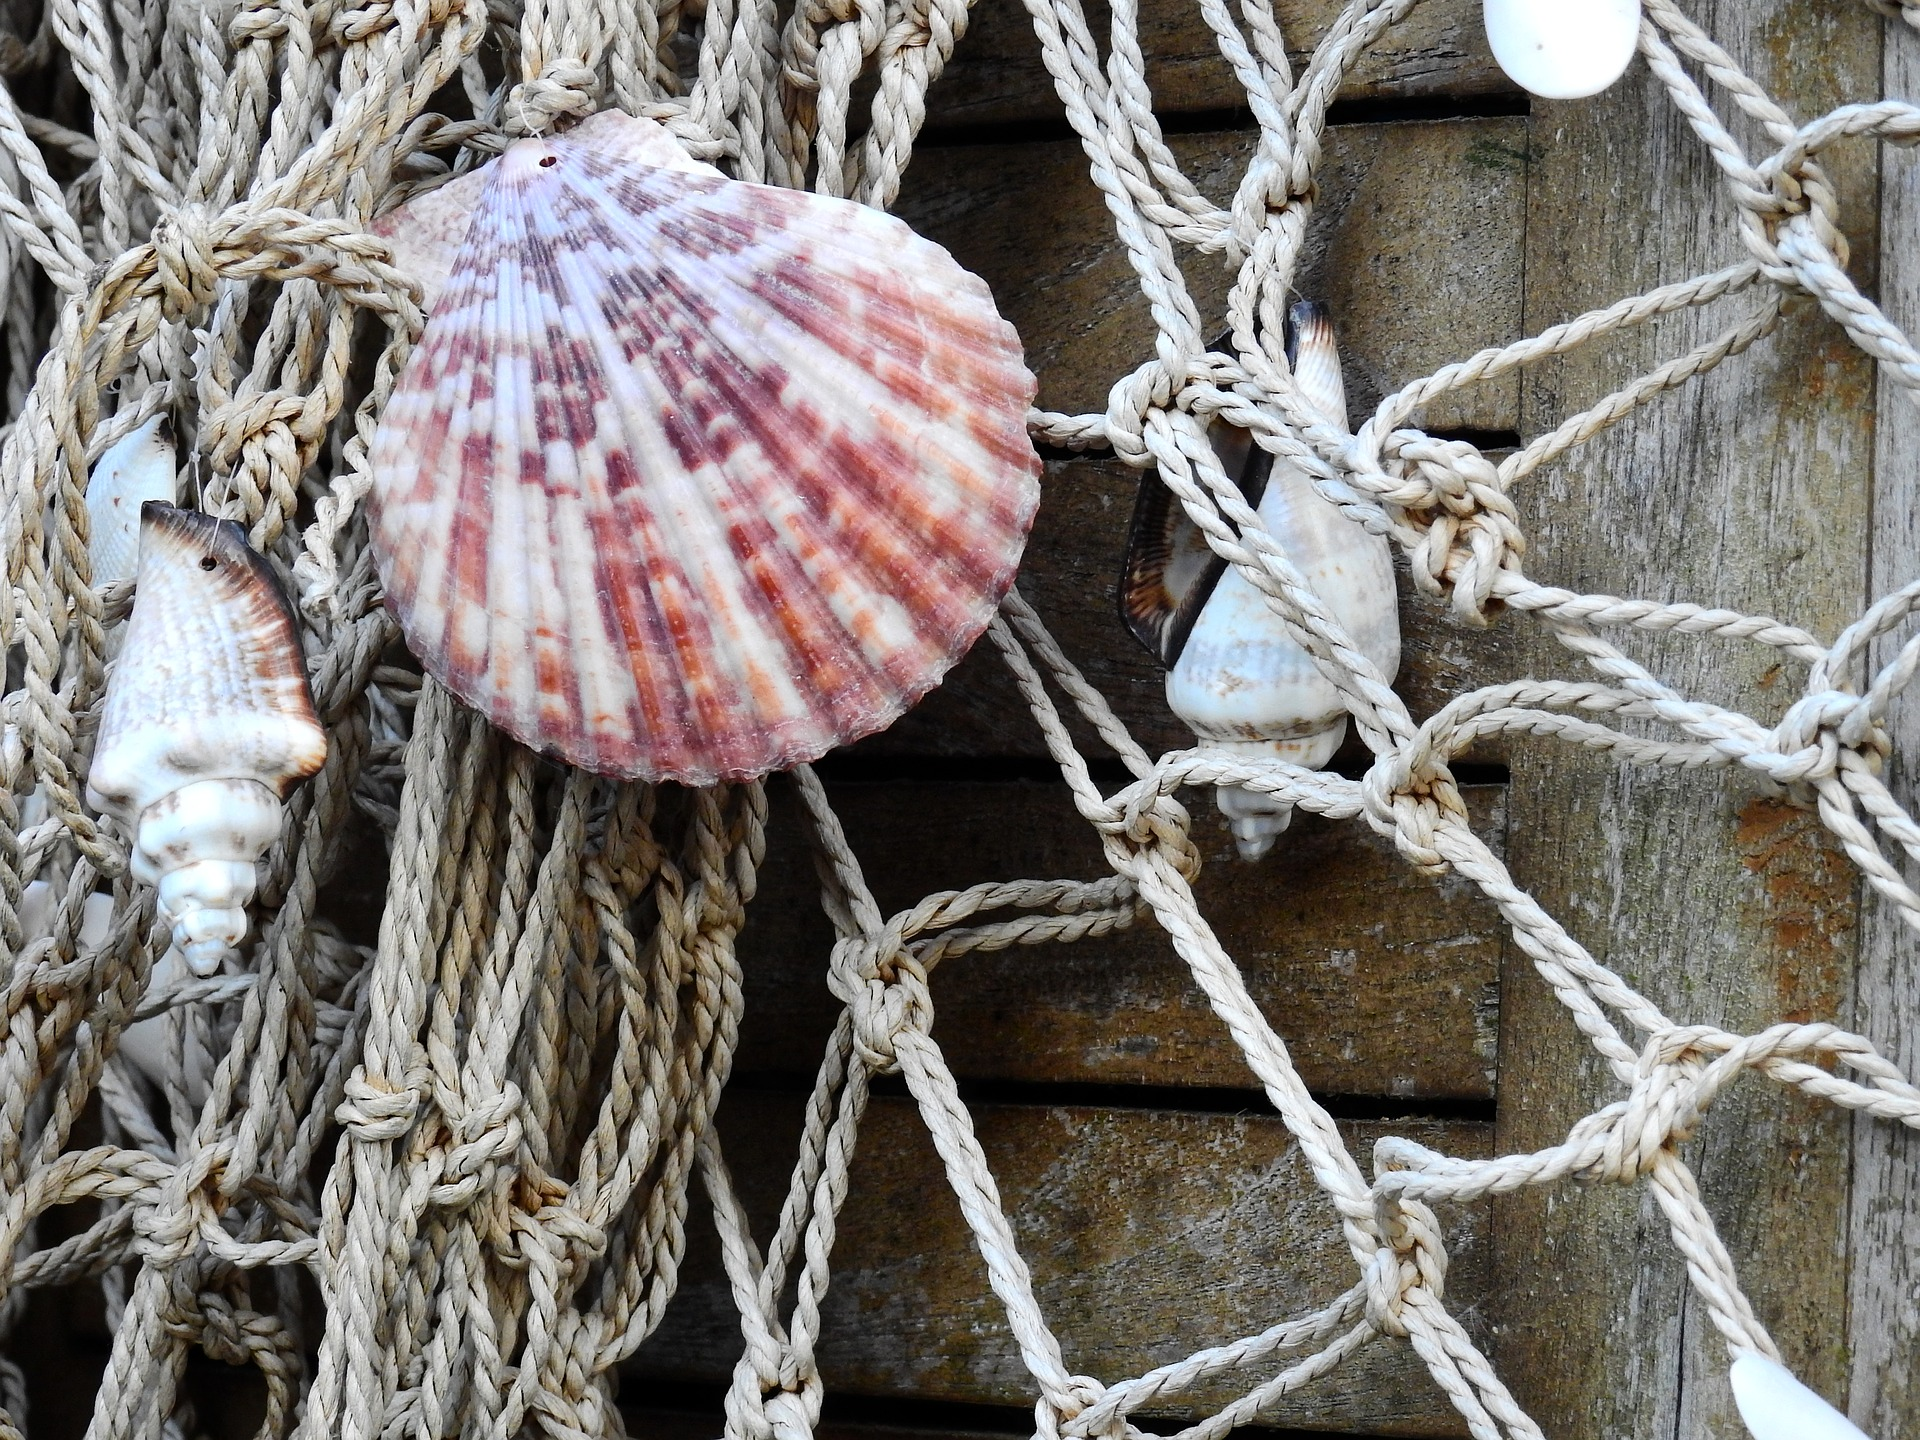 UK Seafood Innovation Fund: New Funding Round Open